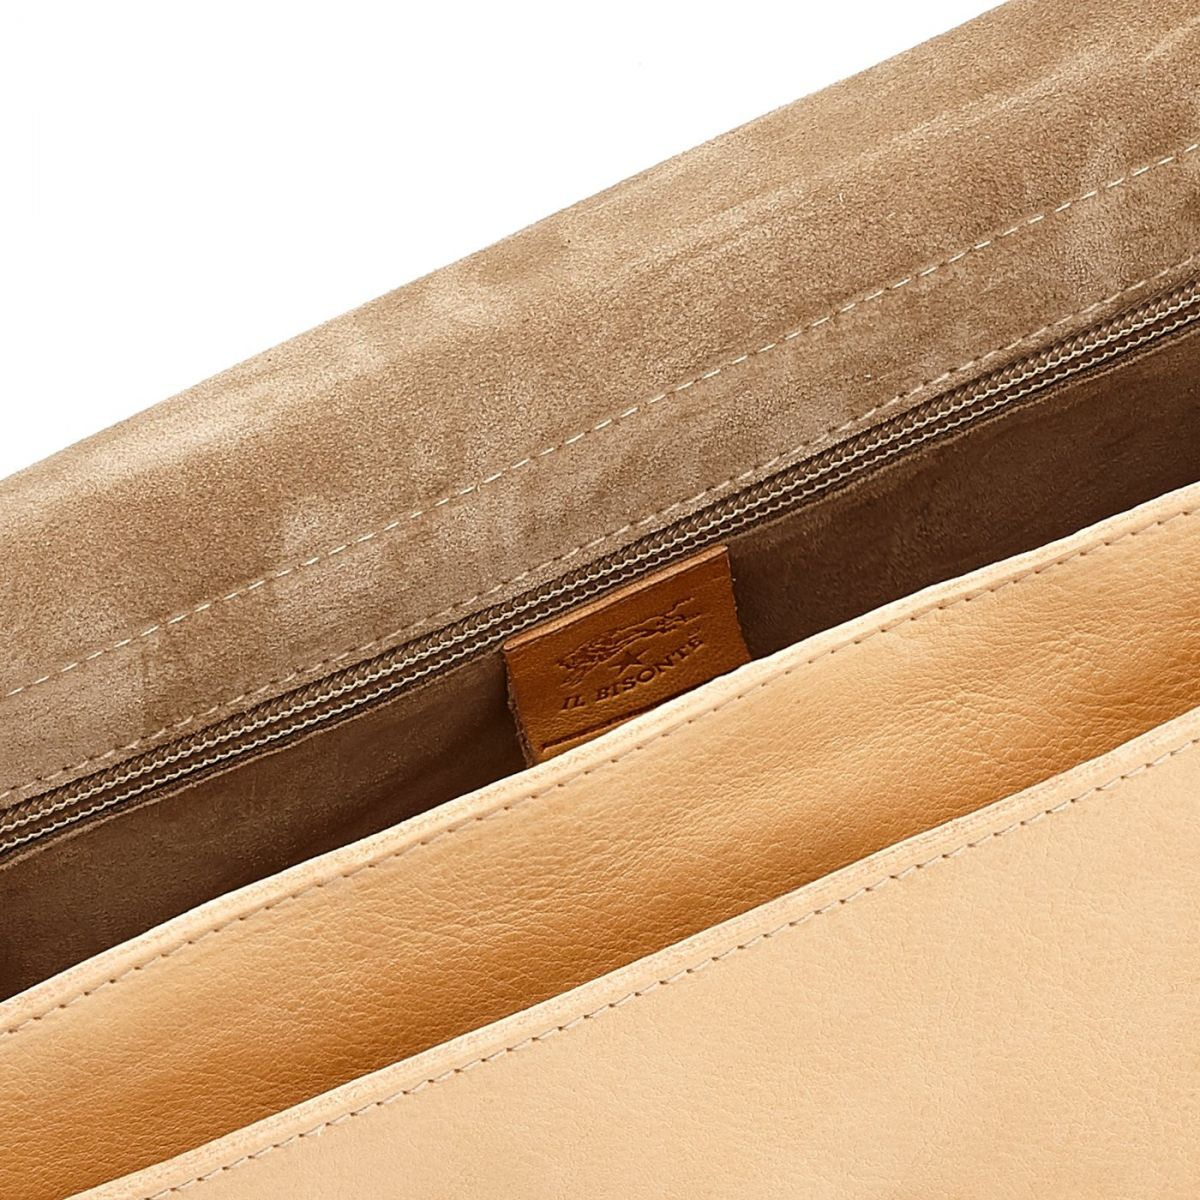 Women's Crossbody Bag Salina in Cowhide Leather BCR172 color Natural | Details